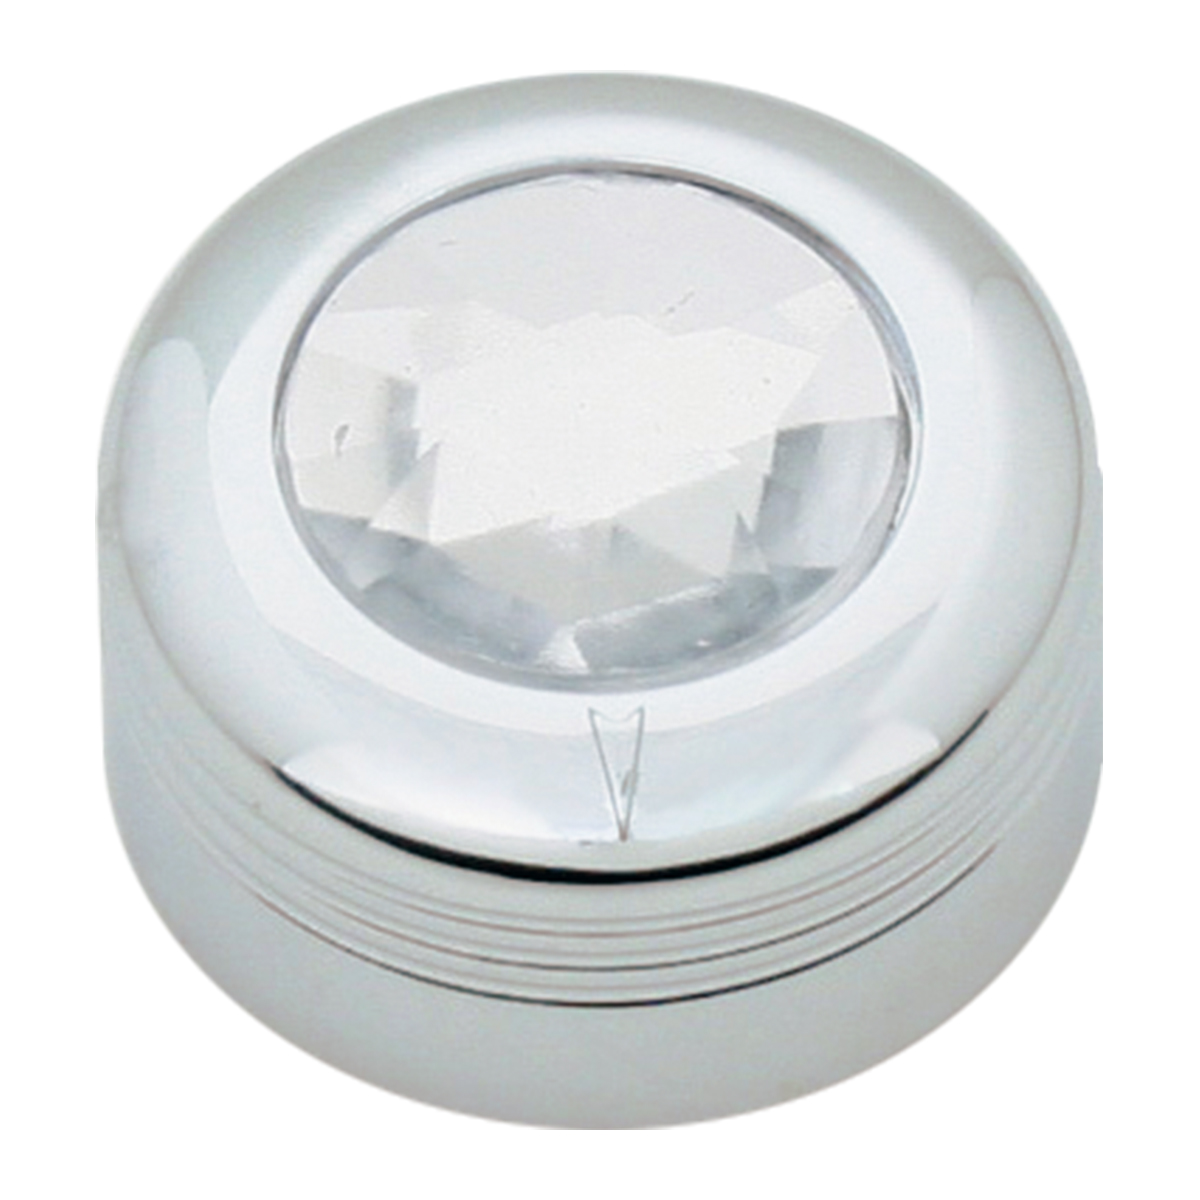 Chrome Plastic A/C Knob w/ Clear Plastic Crystal for Pete